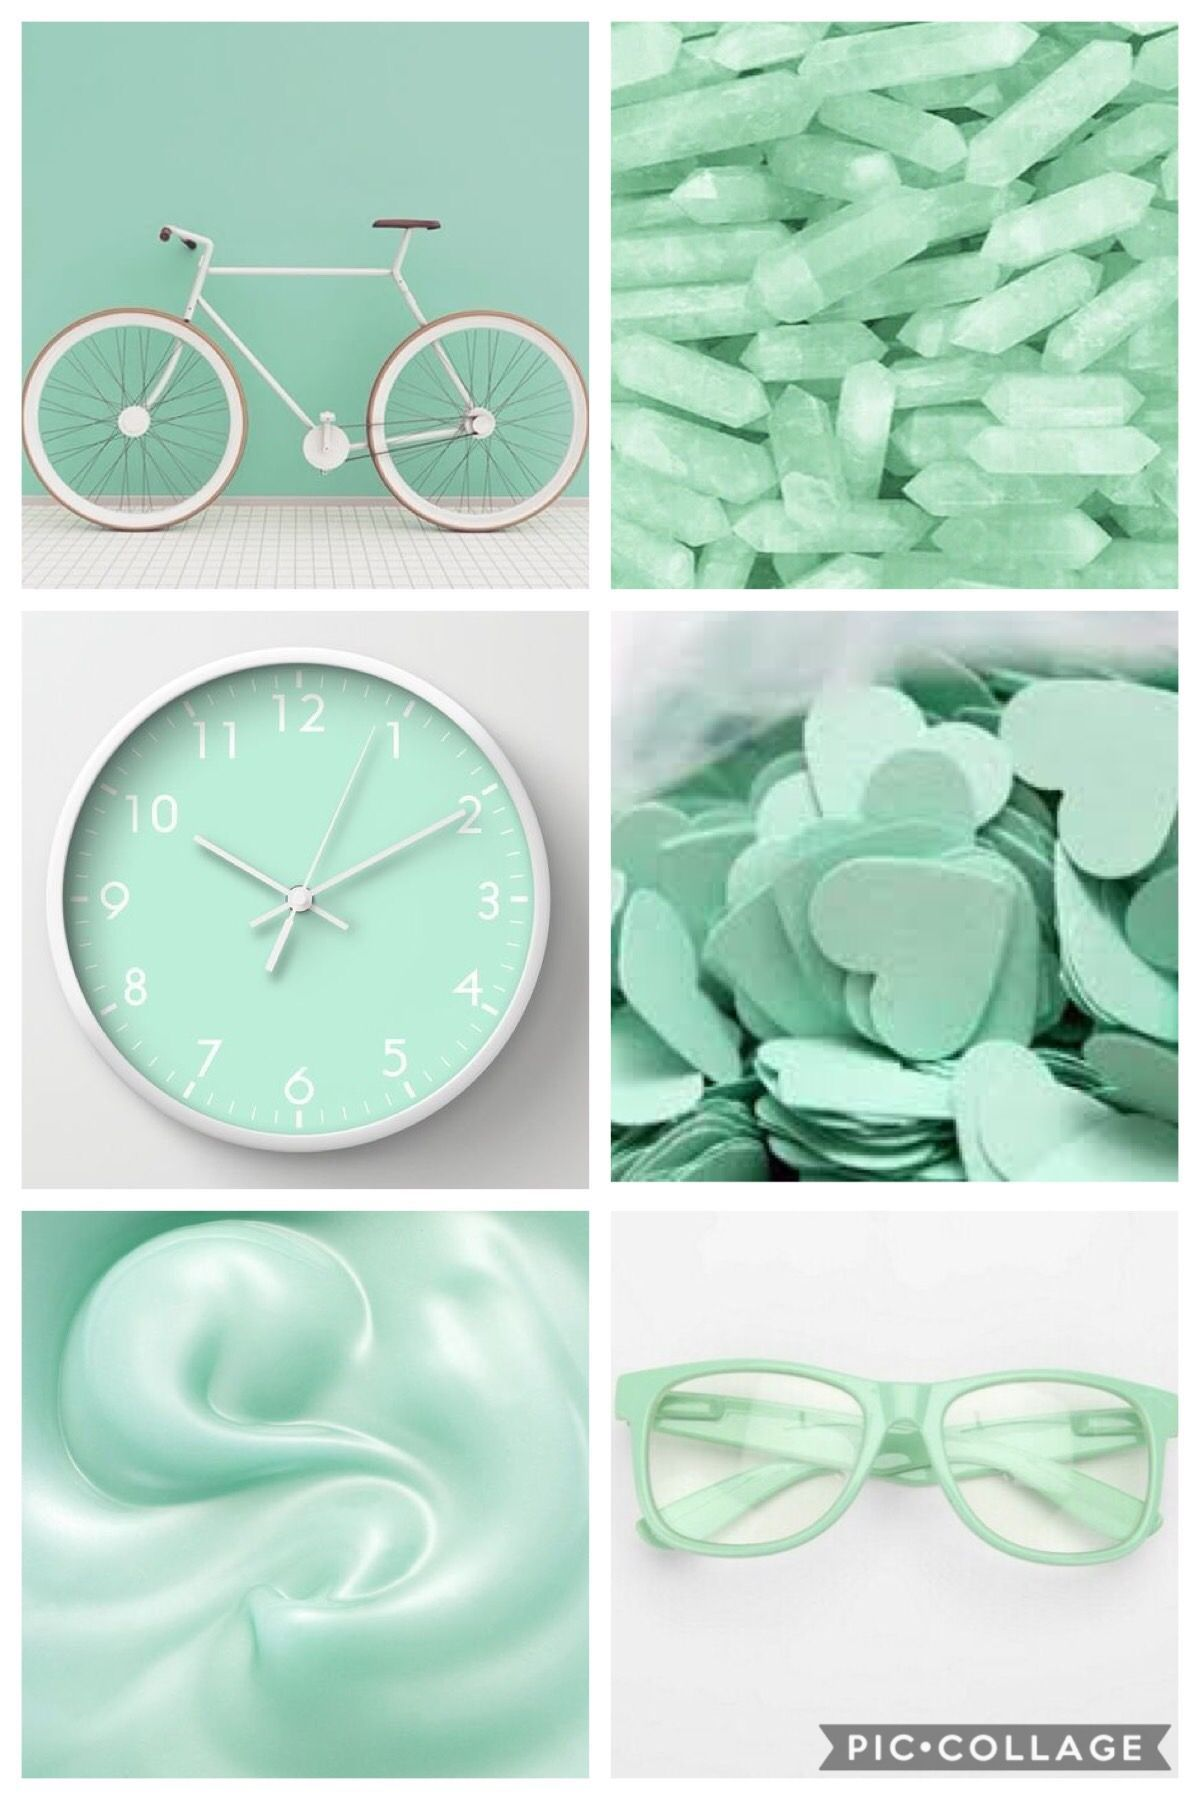 Mint Aesthetic Wallpaper Aesthetic Wallpaper Green 2894115 Hd Wallpaper Backgrounds Download